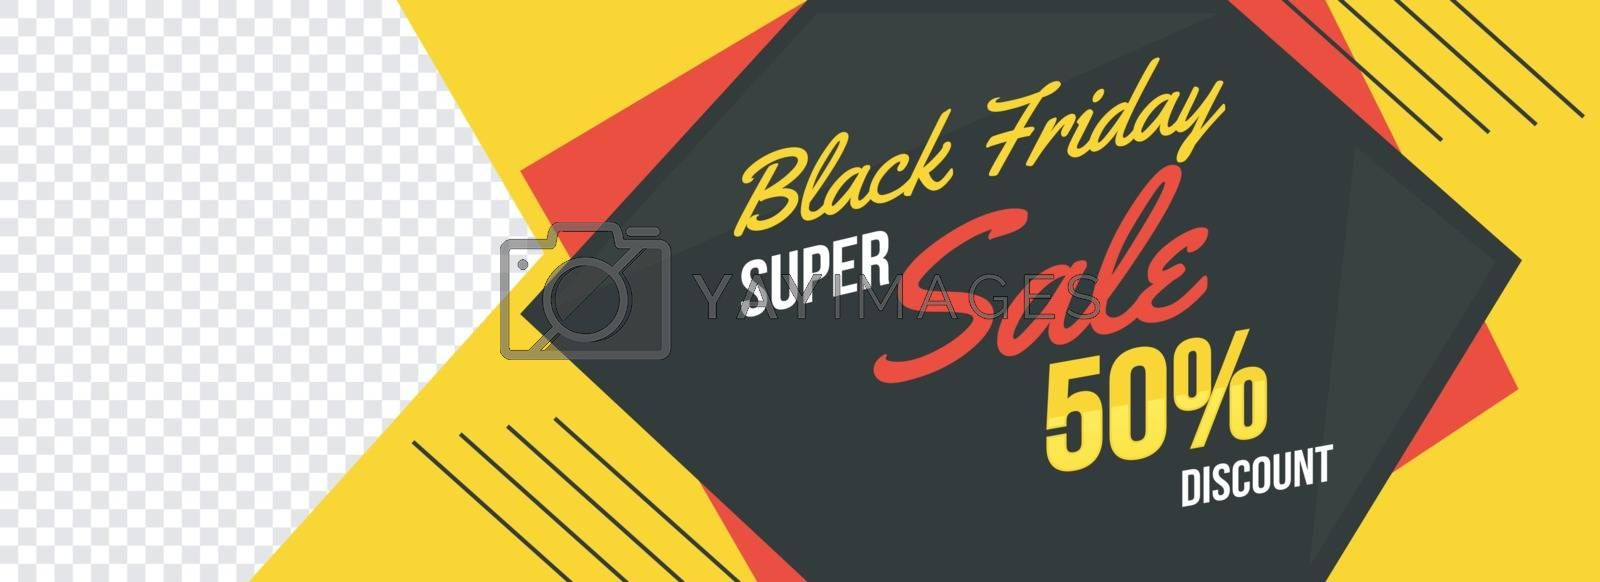 Black Friday sale banner or header design with 50% discount offer and space for your product image.